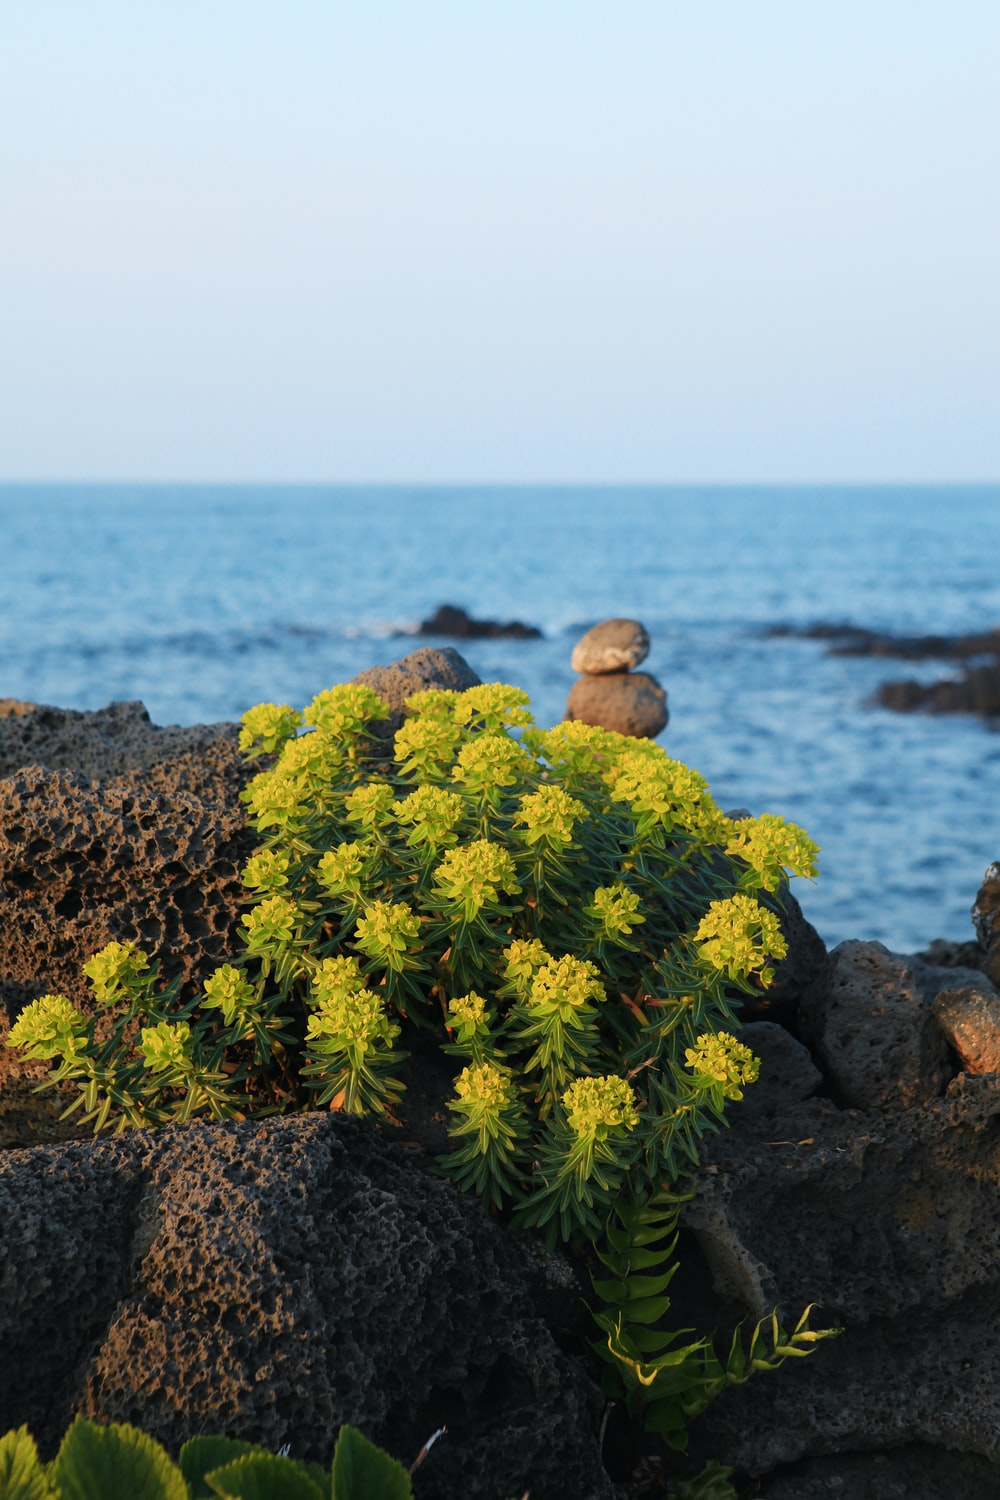 green plant on gray rock near body of water during daytime